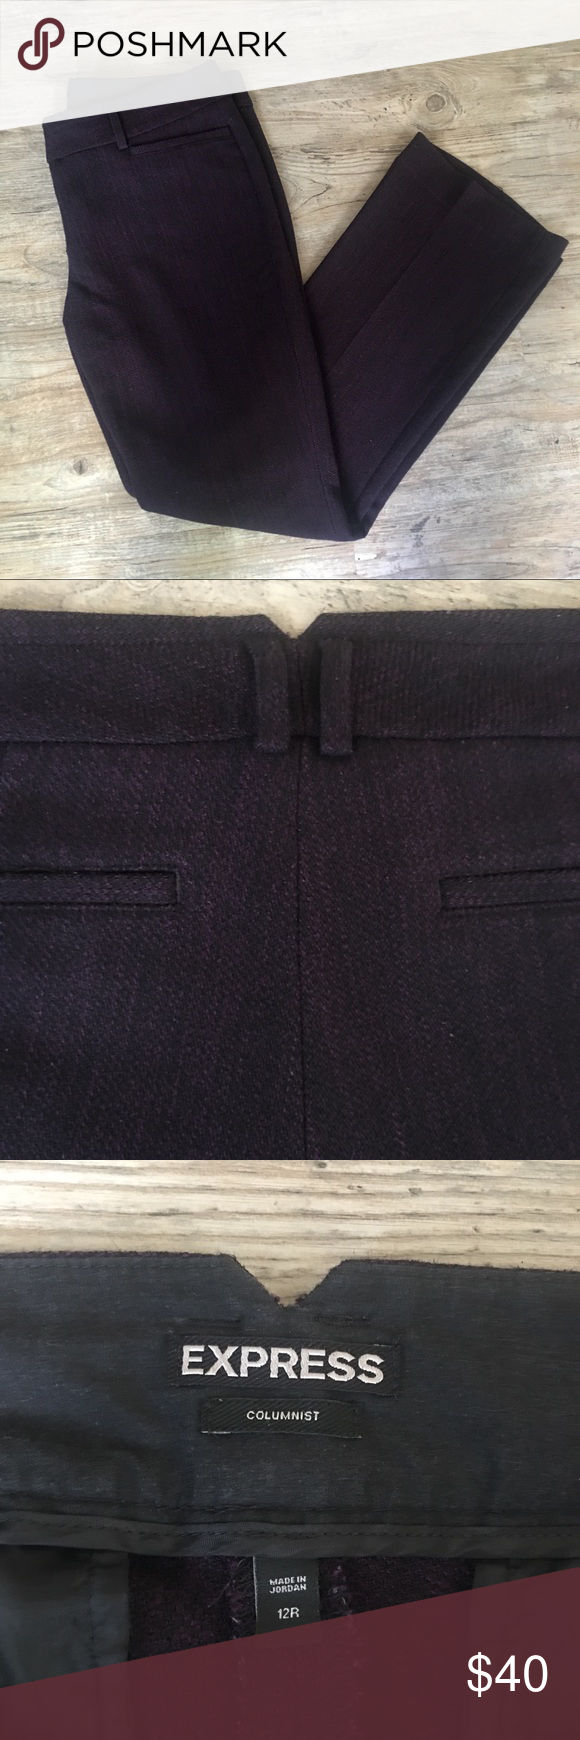 "Express • Columnist • Purple & Black Pants Express • Columnist Pants • Purple and Black mixed threads • Size 12R  Measurements: Waist: 36"" Rise: 9 3/4"" Inseam: 30"" Hips: 38 1/2""  Materials: 50% Viscose 49% Polyester 1% Elastaine  Condition: Gently Used ( No Rips or Stains) Express Pants"